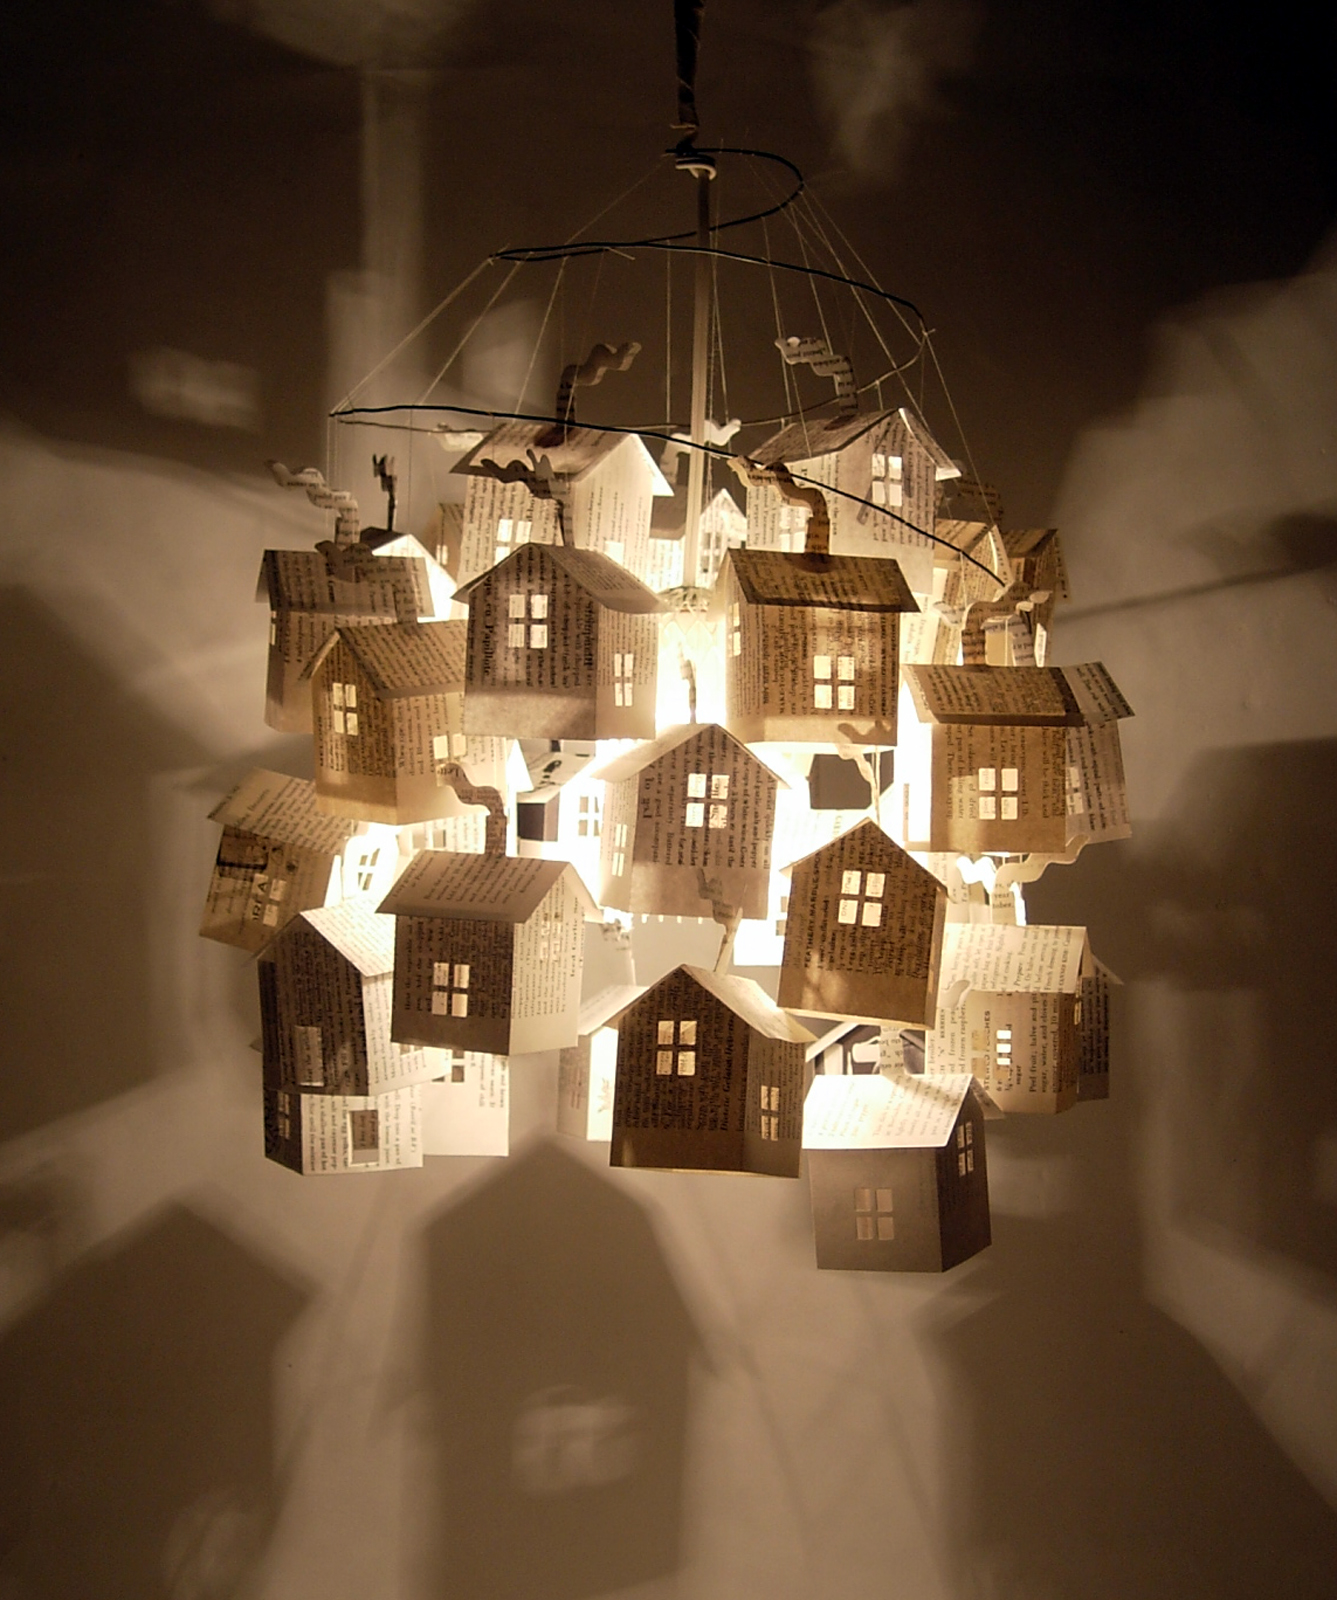 I had to add the very latest addition to the light of hutch. Hung it just this morning in fact. It is a pendant style light comprised of 33 paper houses ... & hutch studio: More on the Light Post. azcodes.com